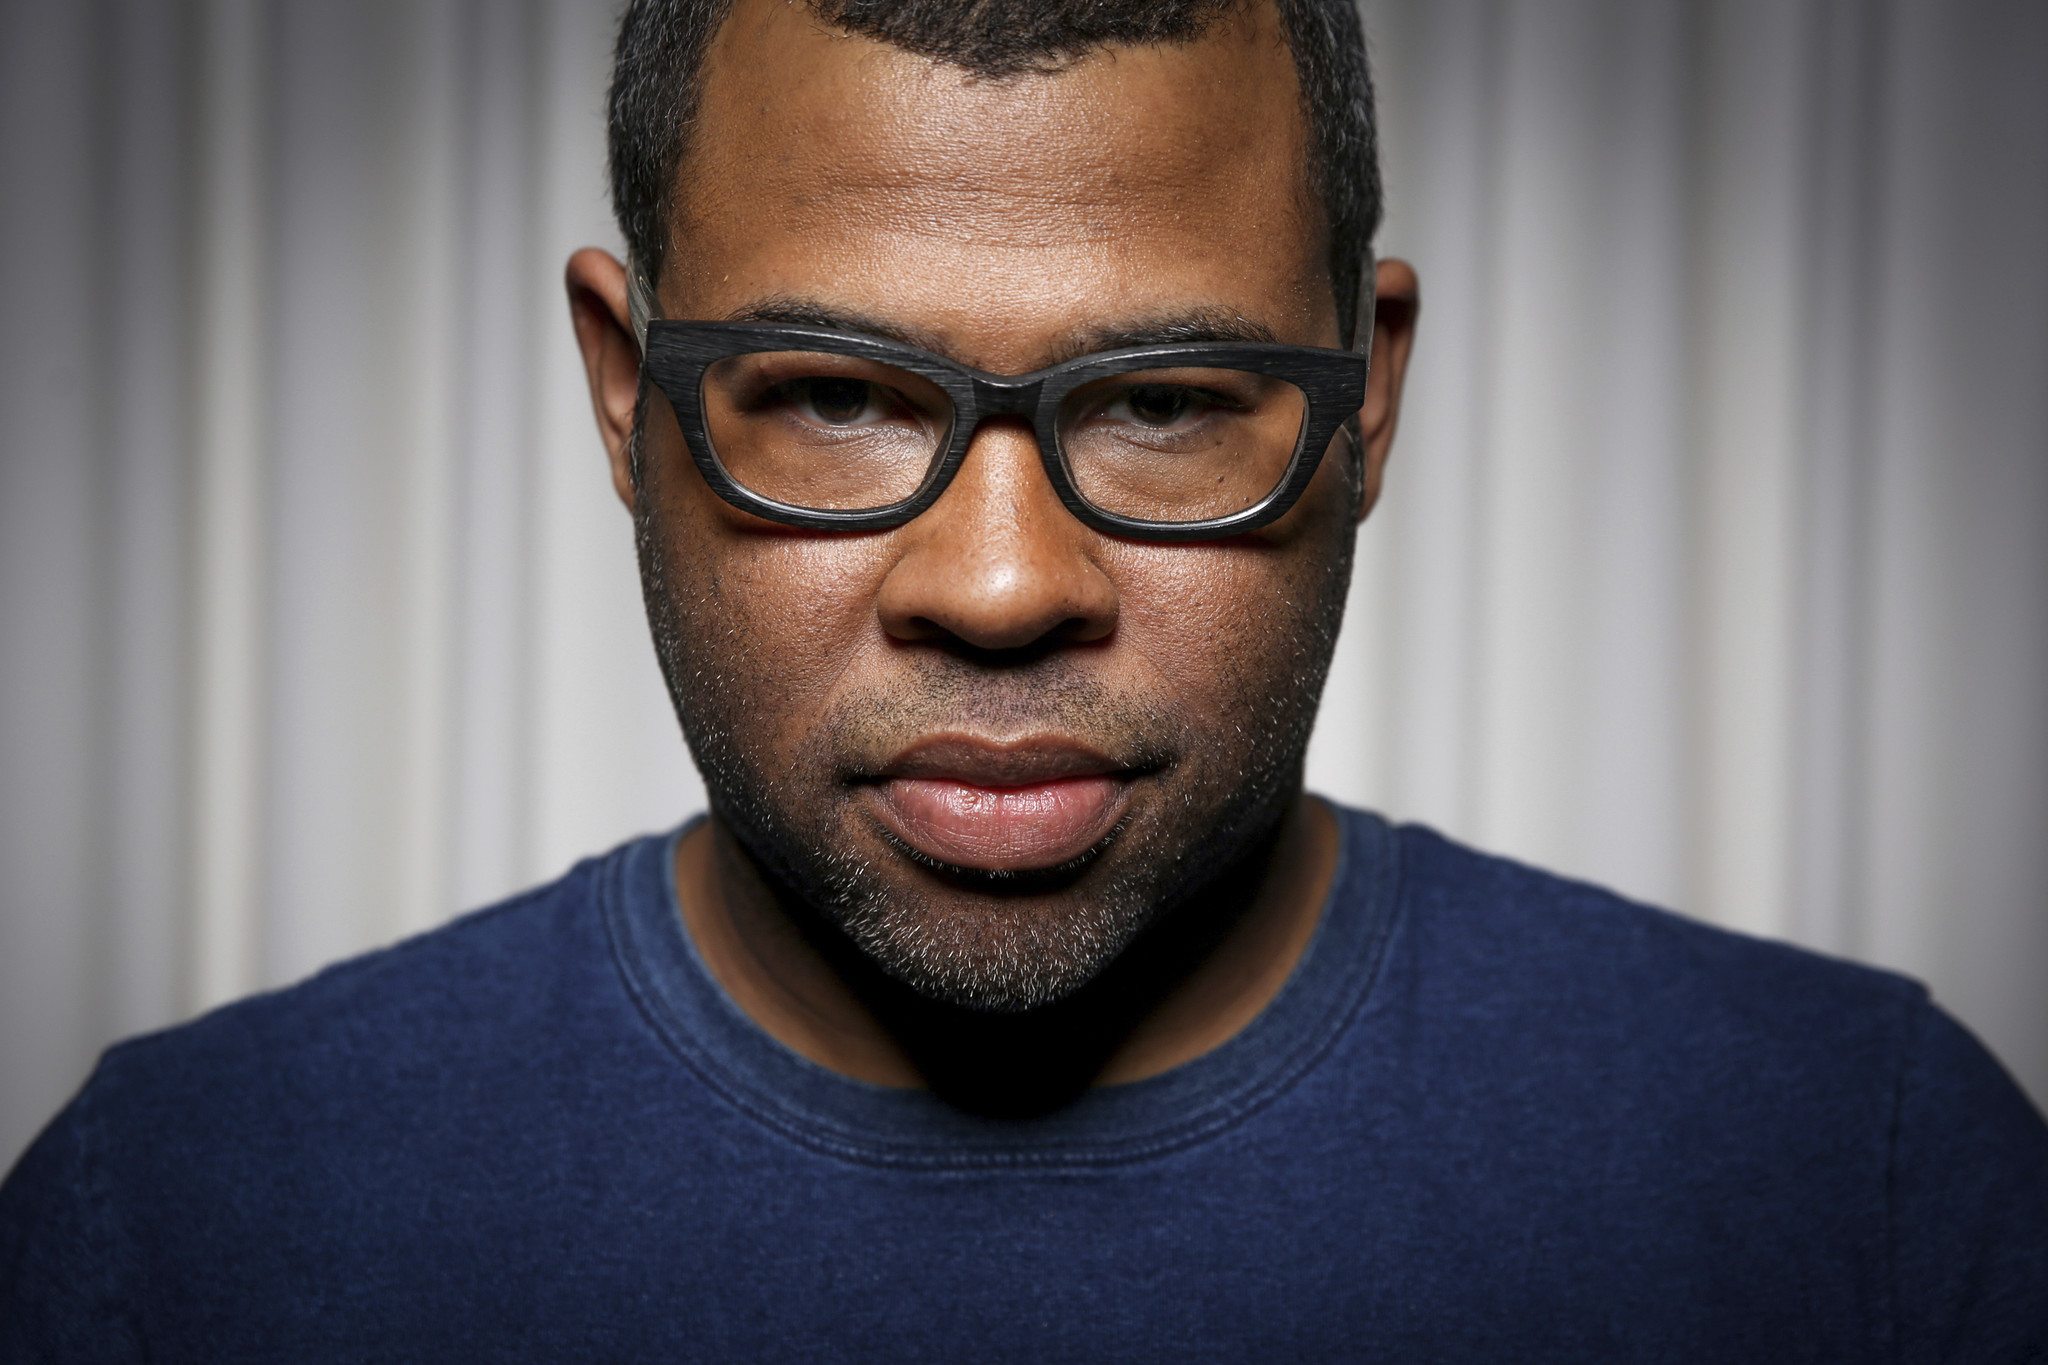 jordan peele chelsea perettijordan peele get out, jordan peele wife, jordan peele chelsea peretti, jordan peele kinopoisk, jordan peele mad tv, jordan peele and keegan michael key, jordan peele parents, jordan peele кинопоиск, jordan peele mother, jordan peele modern family, jordan peele tyler the creator, jordan peele movie, jordan peele bob's burgers, jordan peele fargo, jordan peele movie horror, jordan peele milk, jordan peele mother lucinda williams, jordan peele height, jordan peele sweating, jordan peele new movie